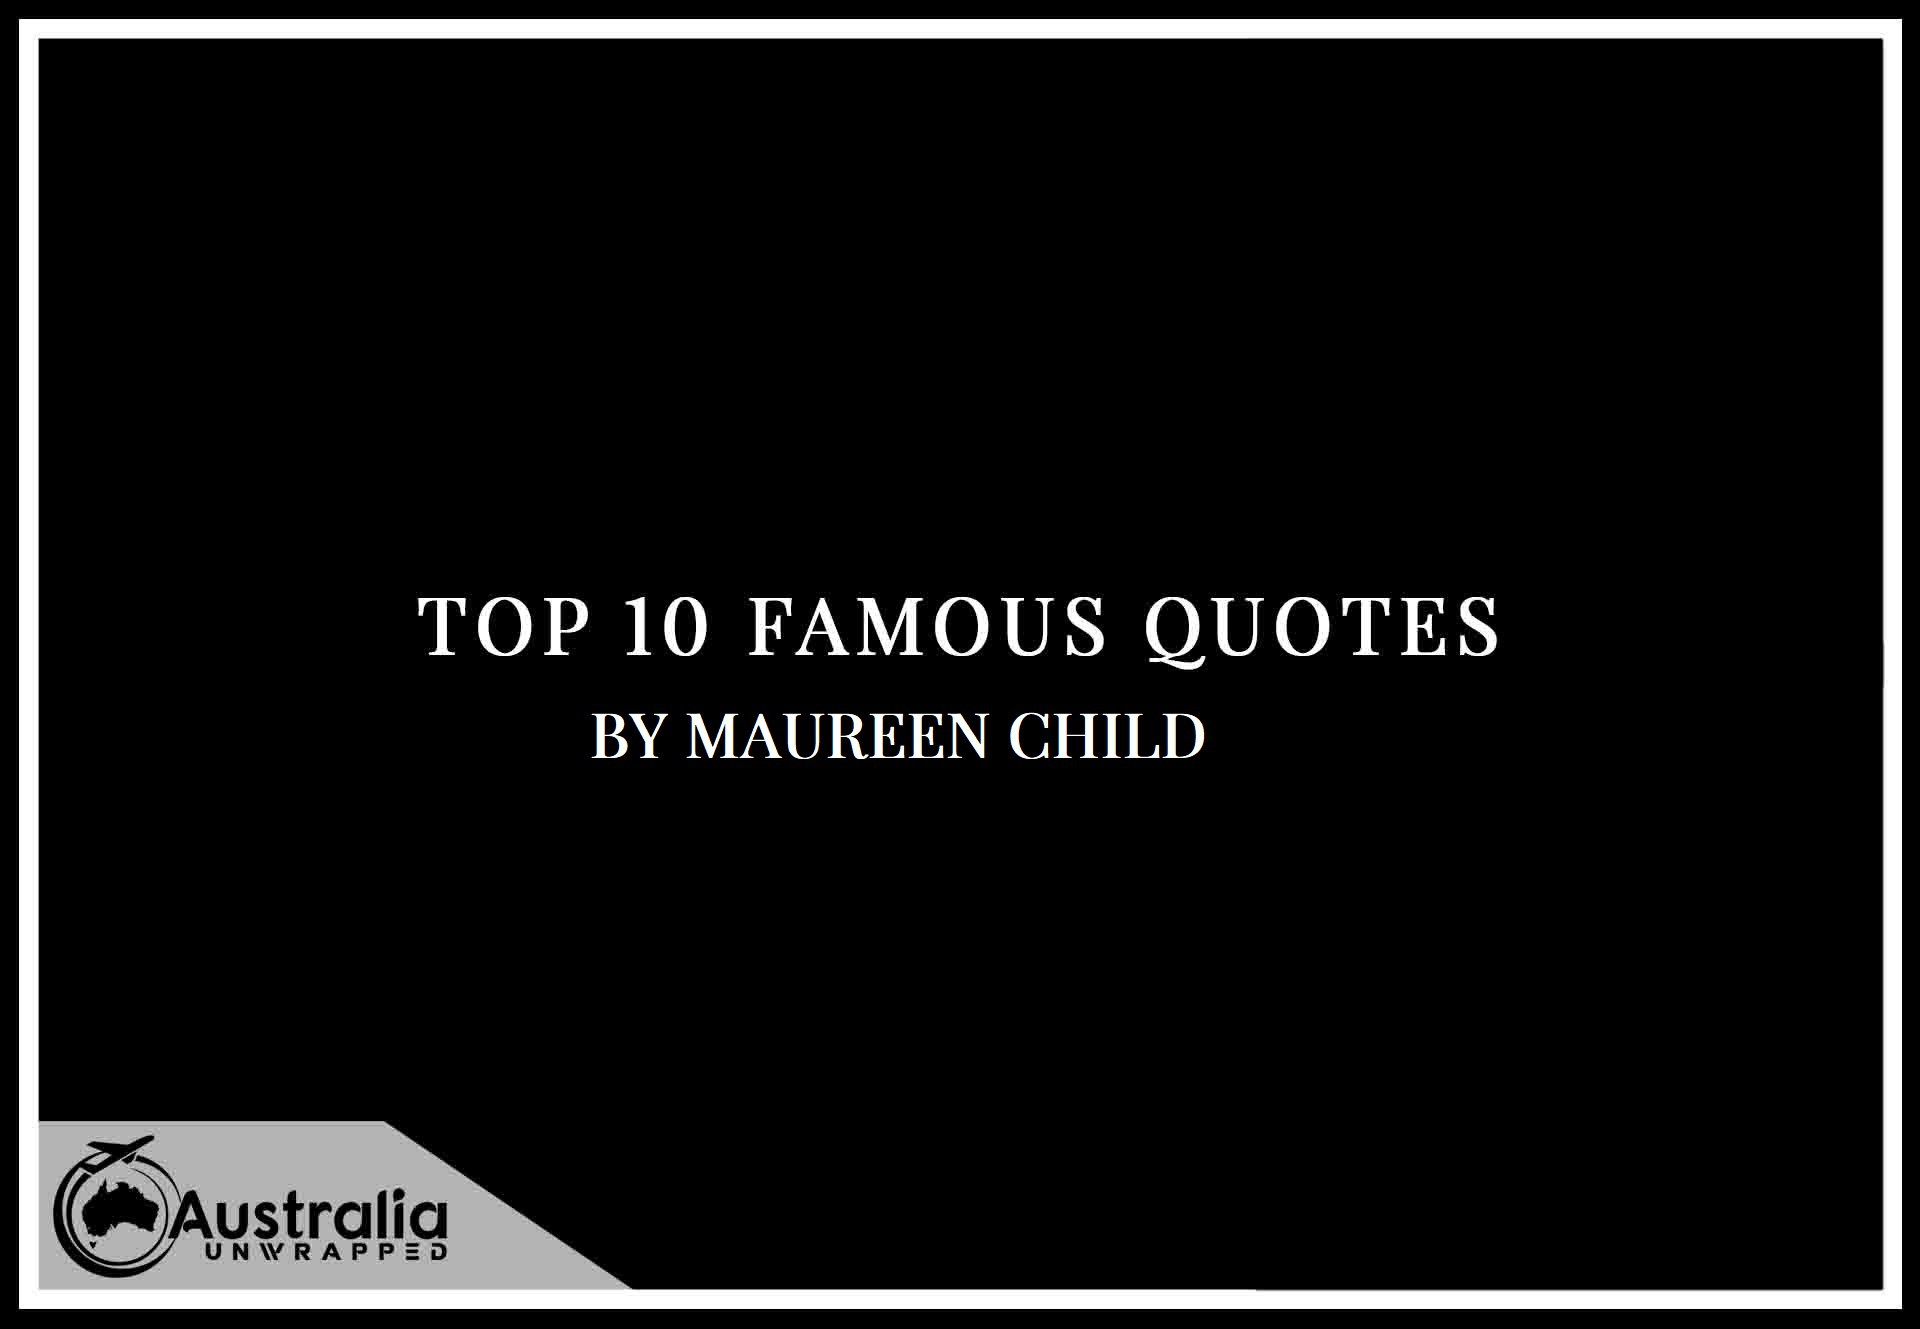 Top 10 Famous Quotes by Author Maureen Child